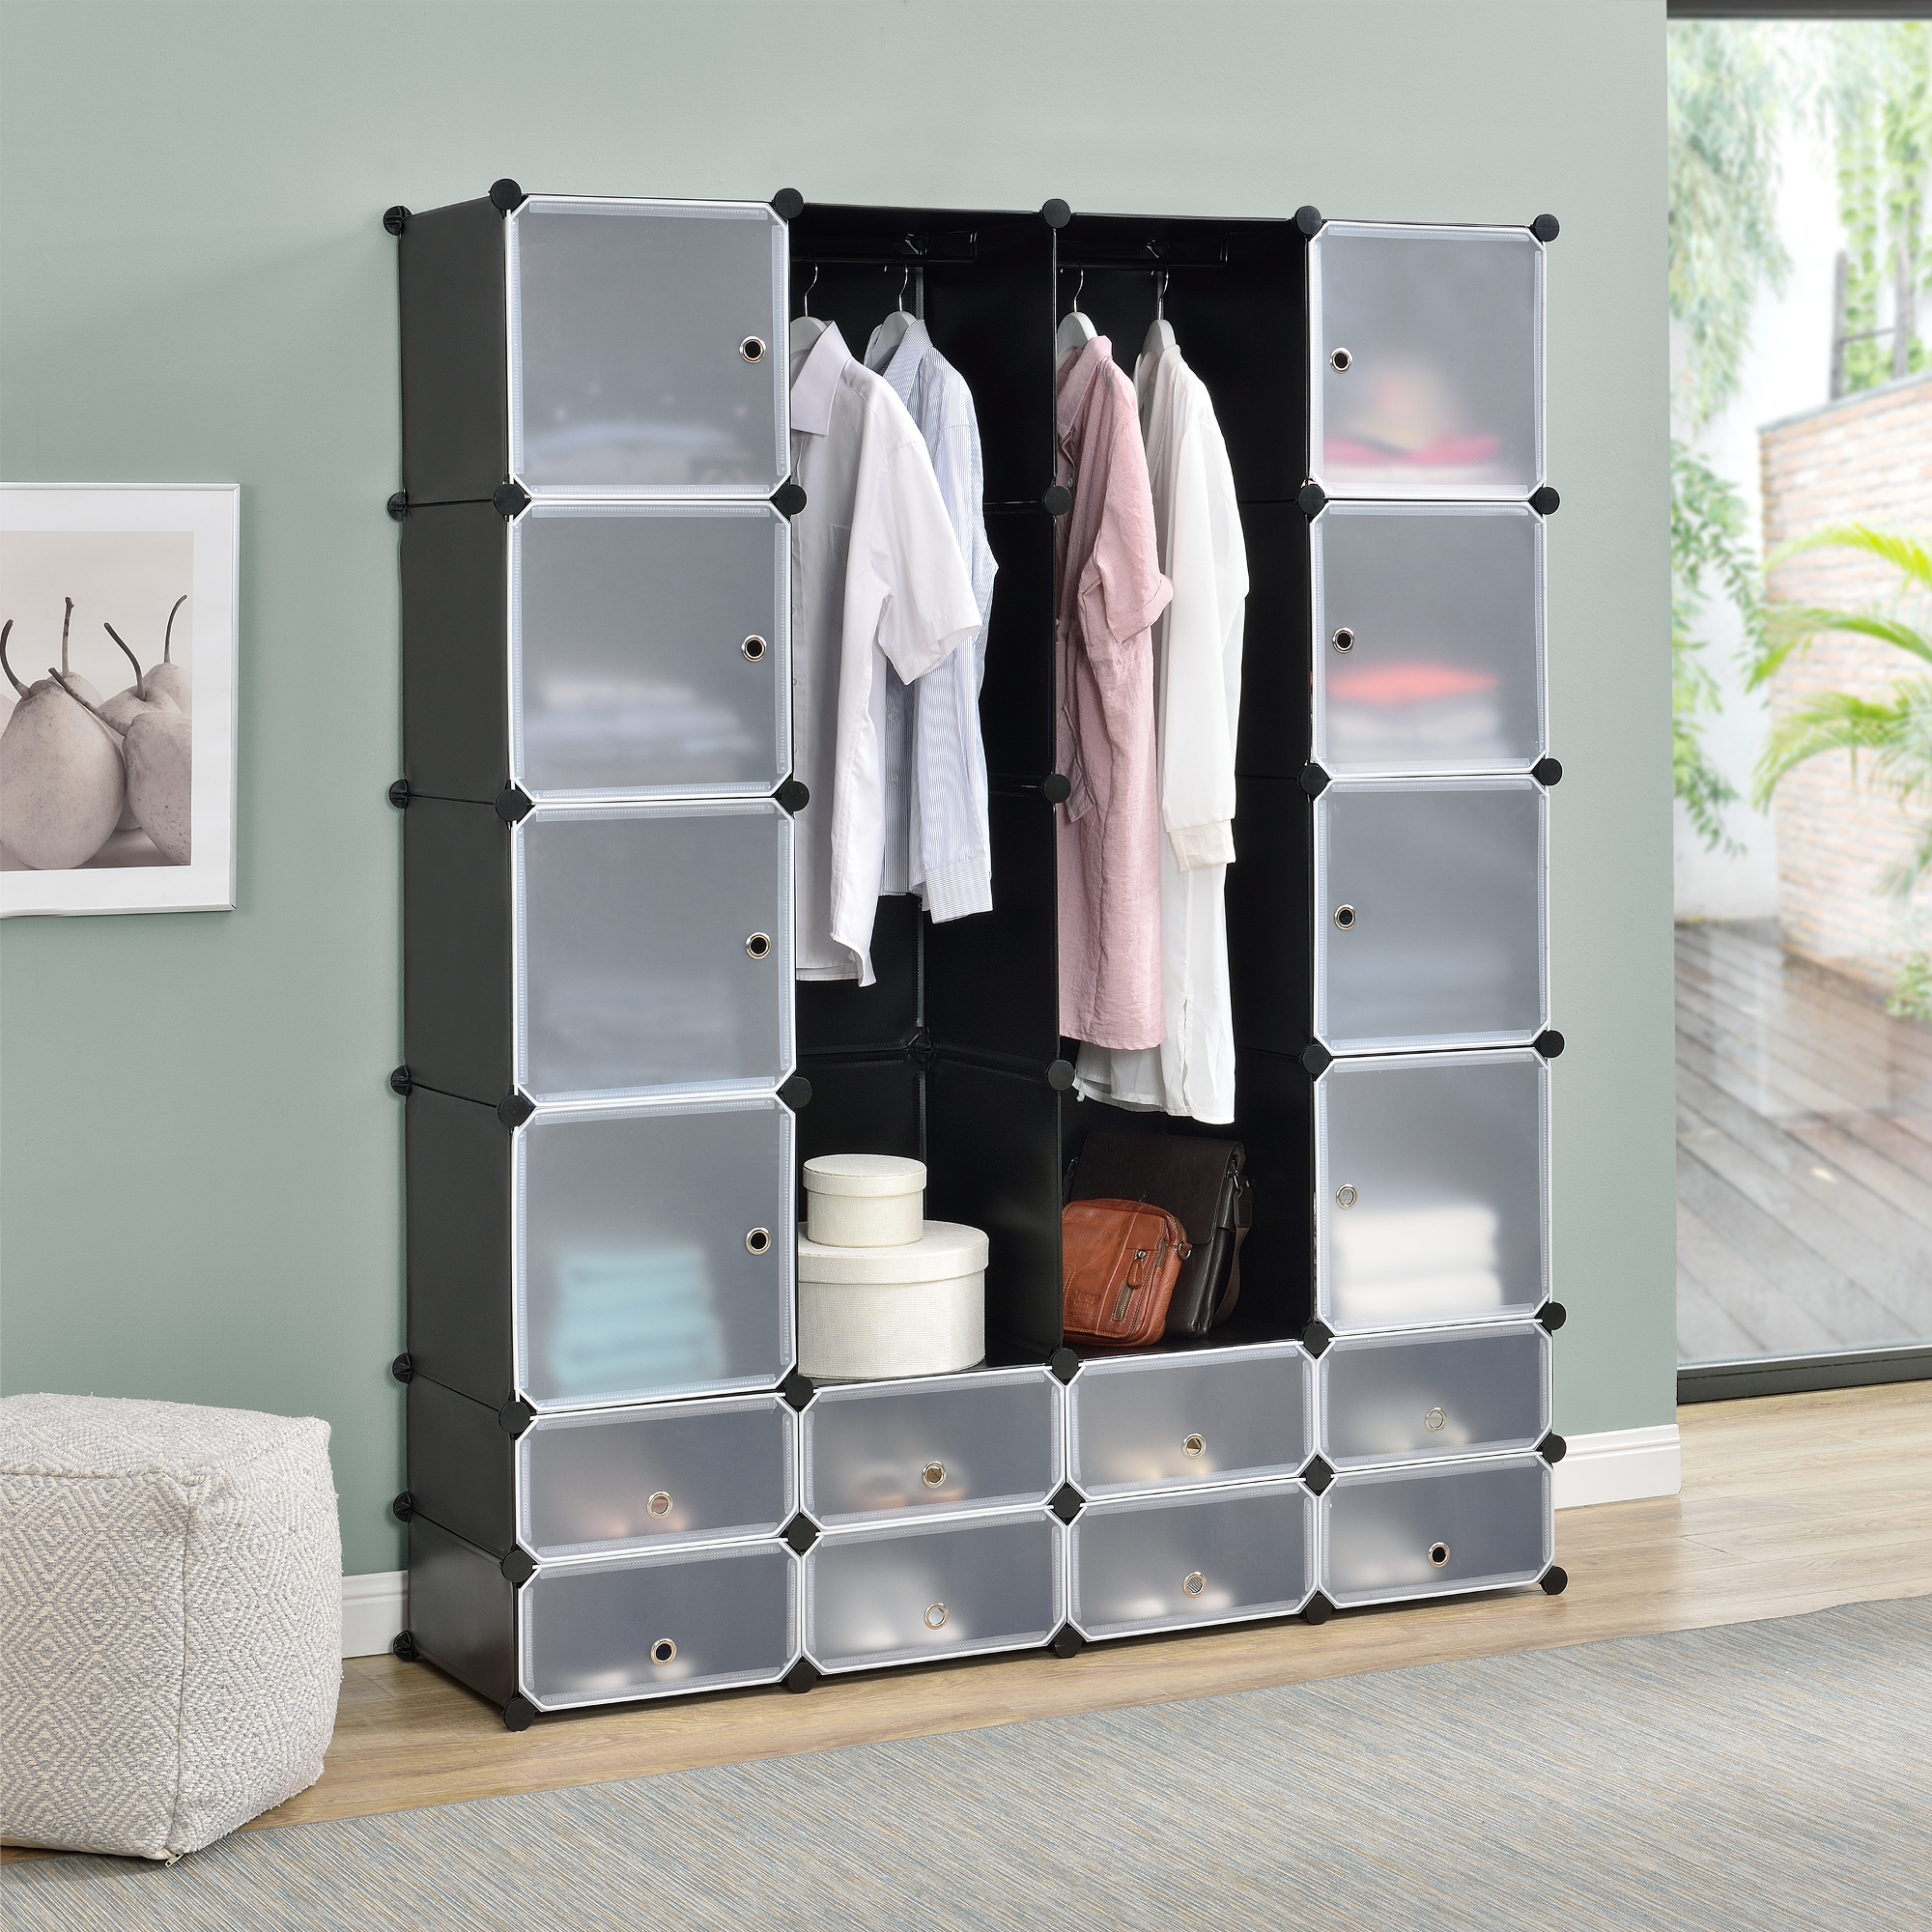 diy system regal schrank 16 t ren 180x145cm schwarz wei steck b ro ebay. Black Bedroom Furniture Sets. Home Design Ideas